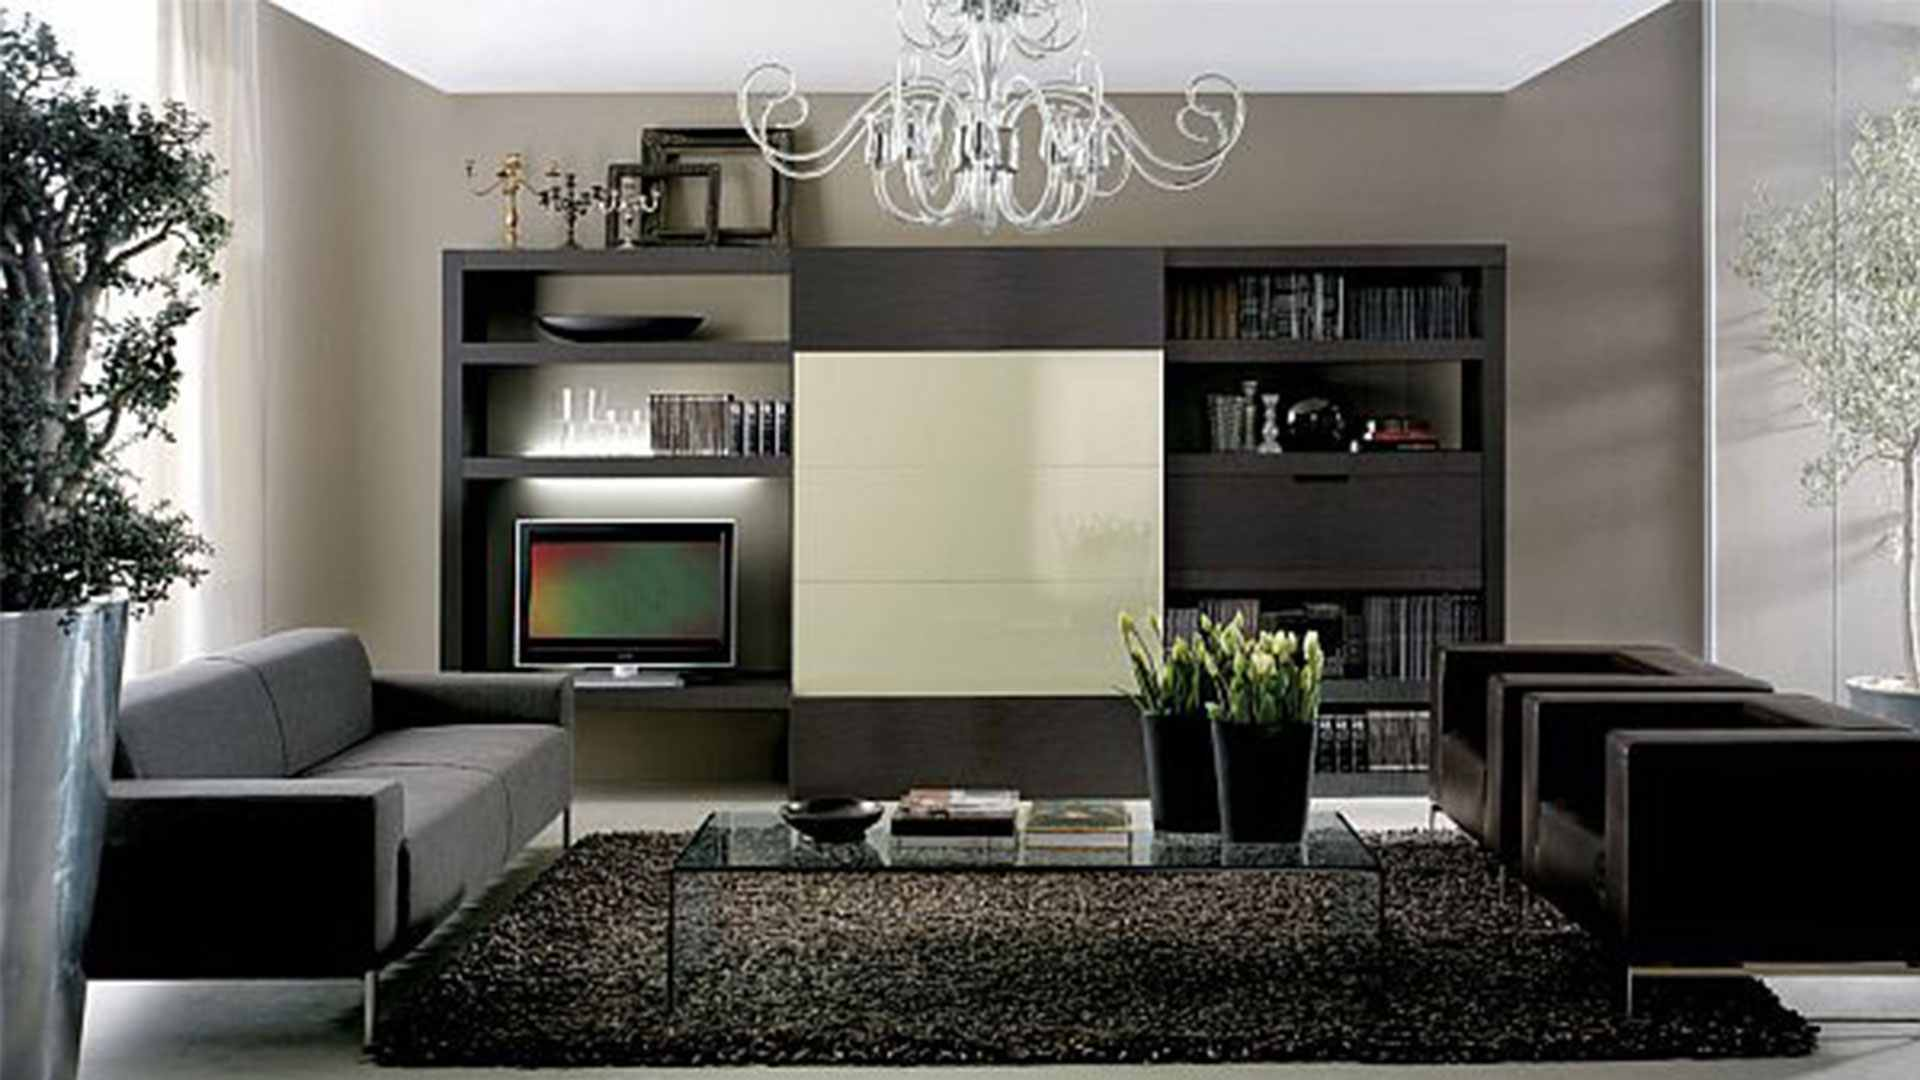 Living Room Paint Ideas For Dark Furniture exellent living room colors ideas for dark furniture walls with